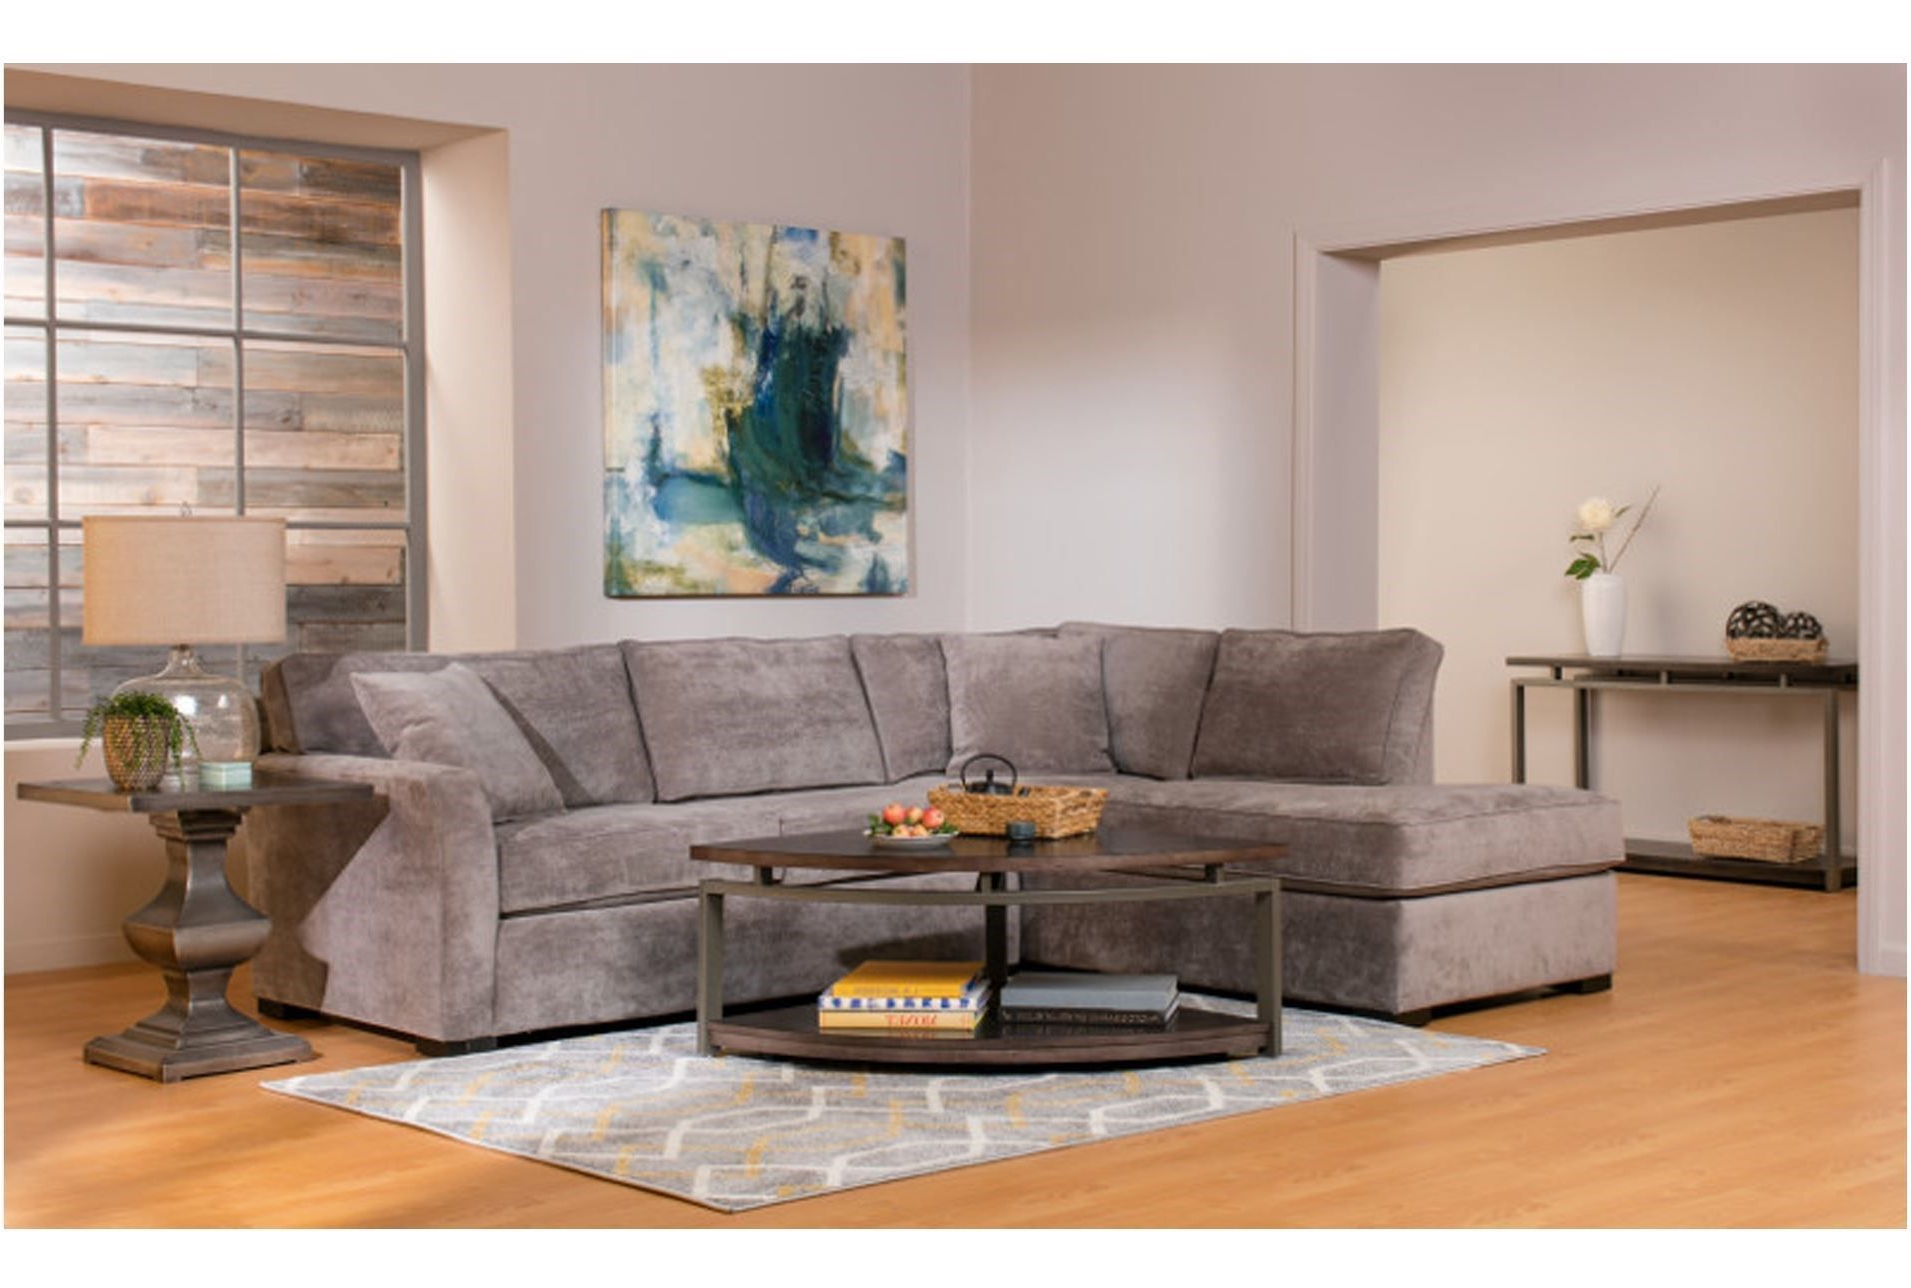 Most Popular Aspen 2 Piece Sectional W/laf Chaise In  (View 14 of 20)